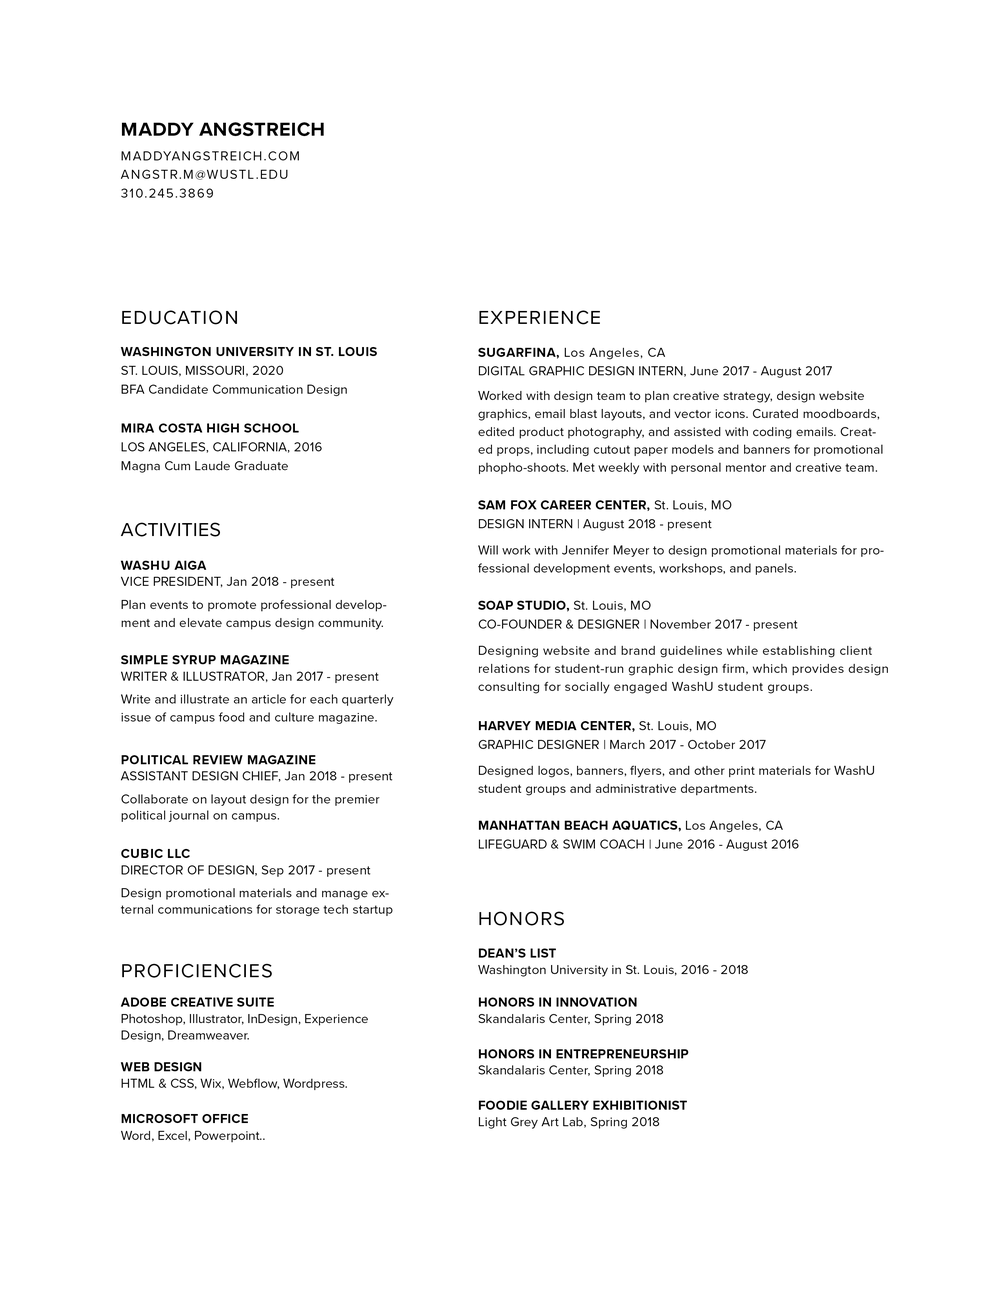 resume 3.31.18.png